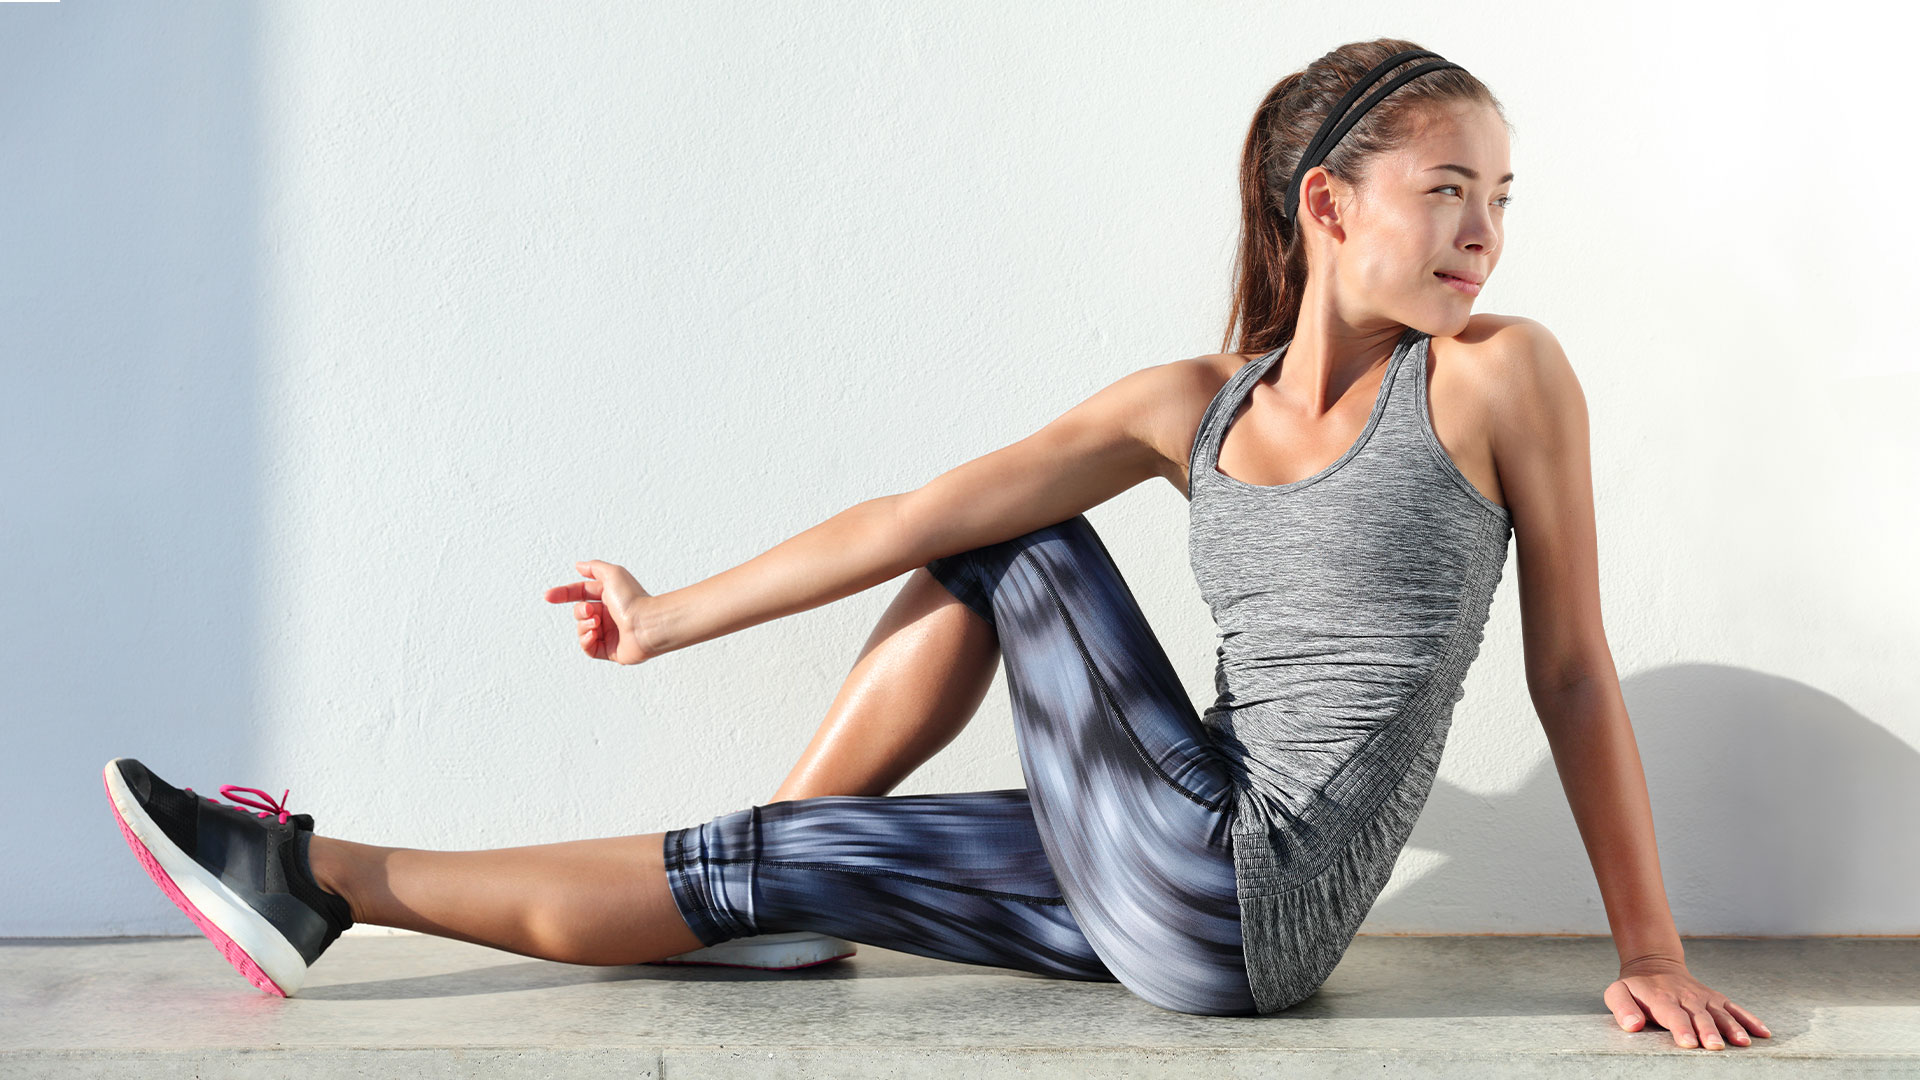 Woman in workout clothes is seated on the ground with legs outstretched and twists her upper body to stretch her torso.